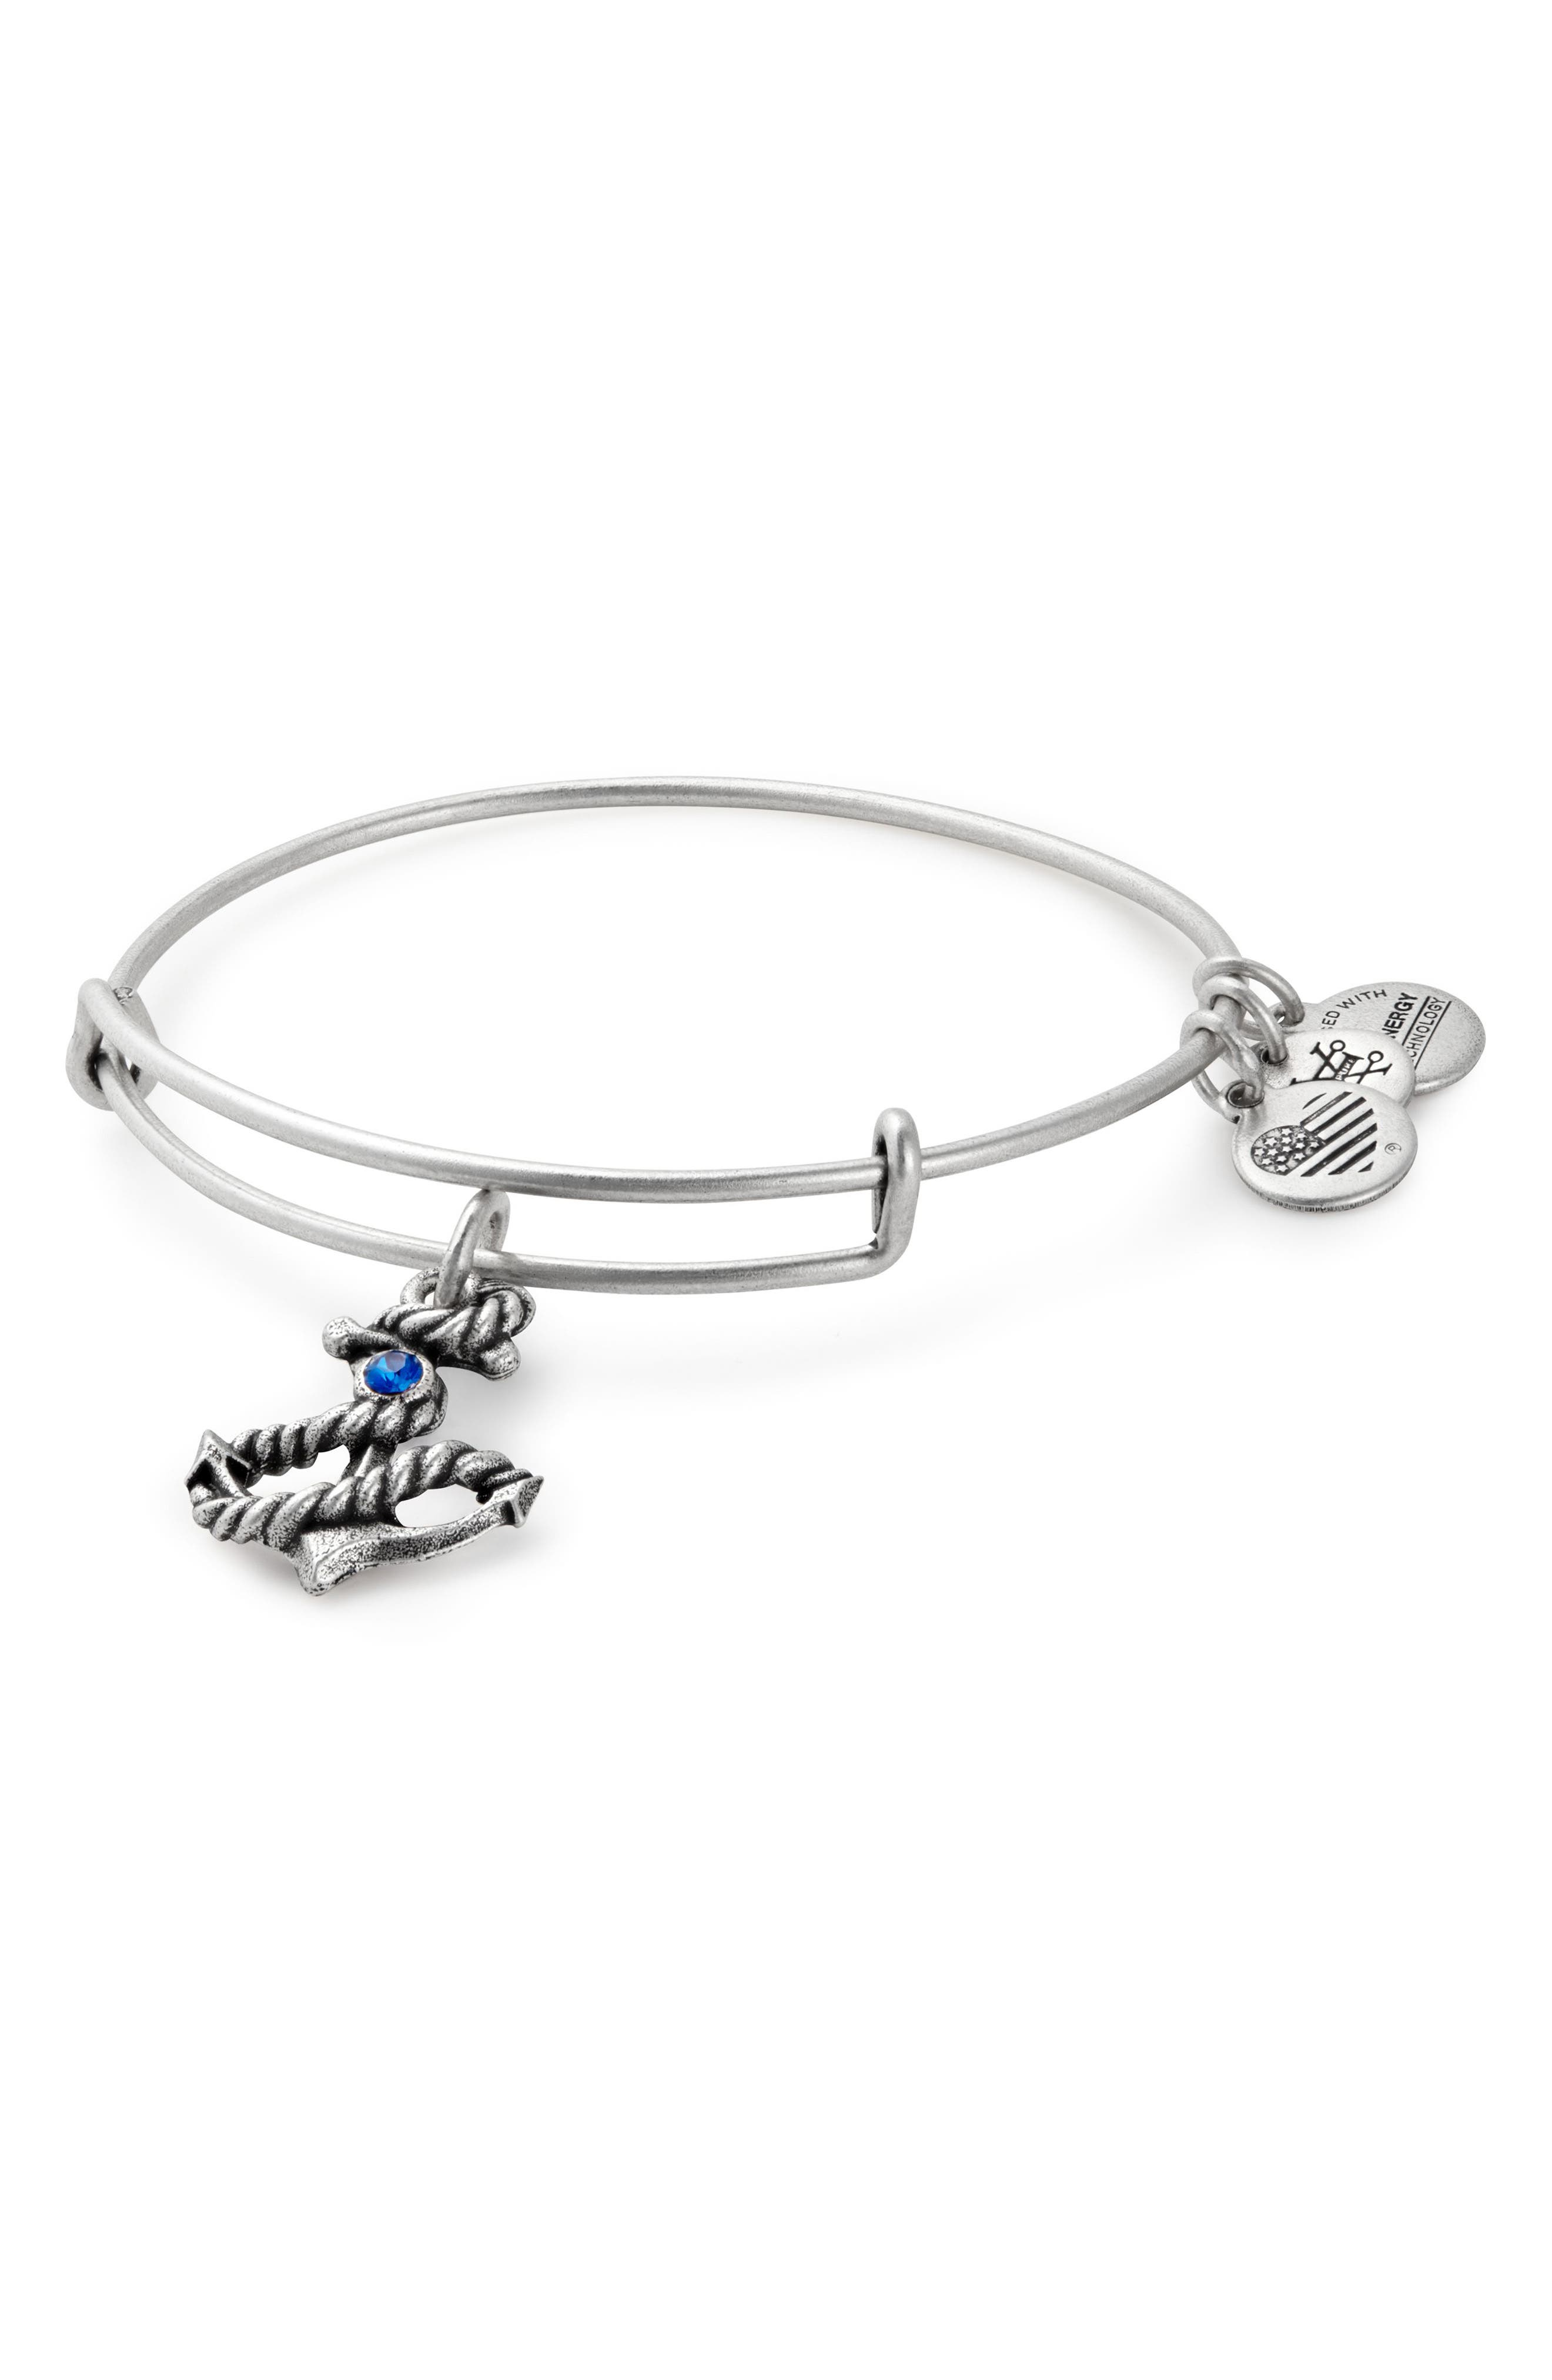 Main Image - Alex and Ani Anchor Adjustable Wire Bangle